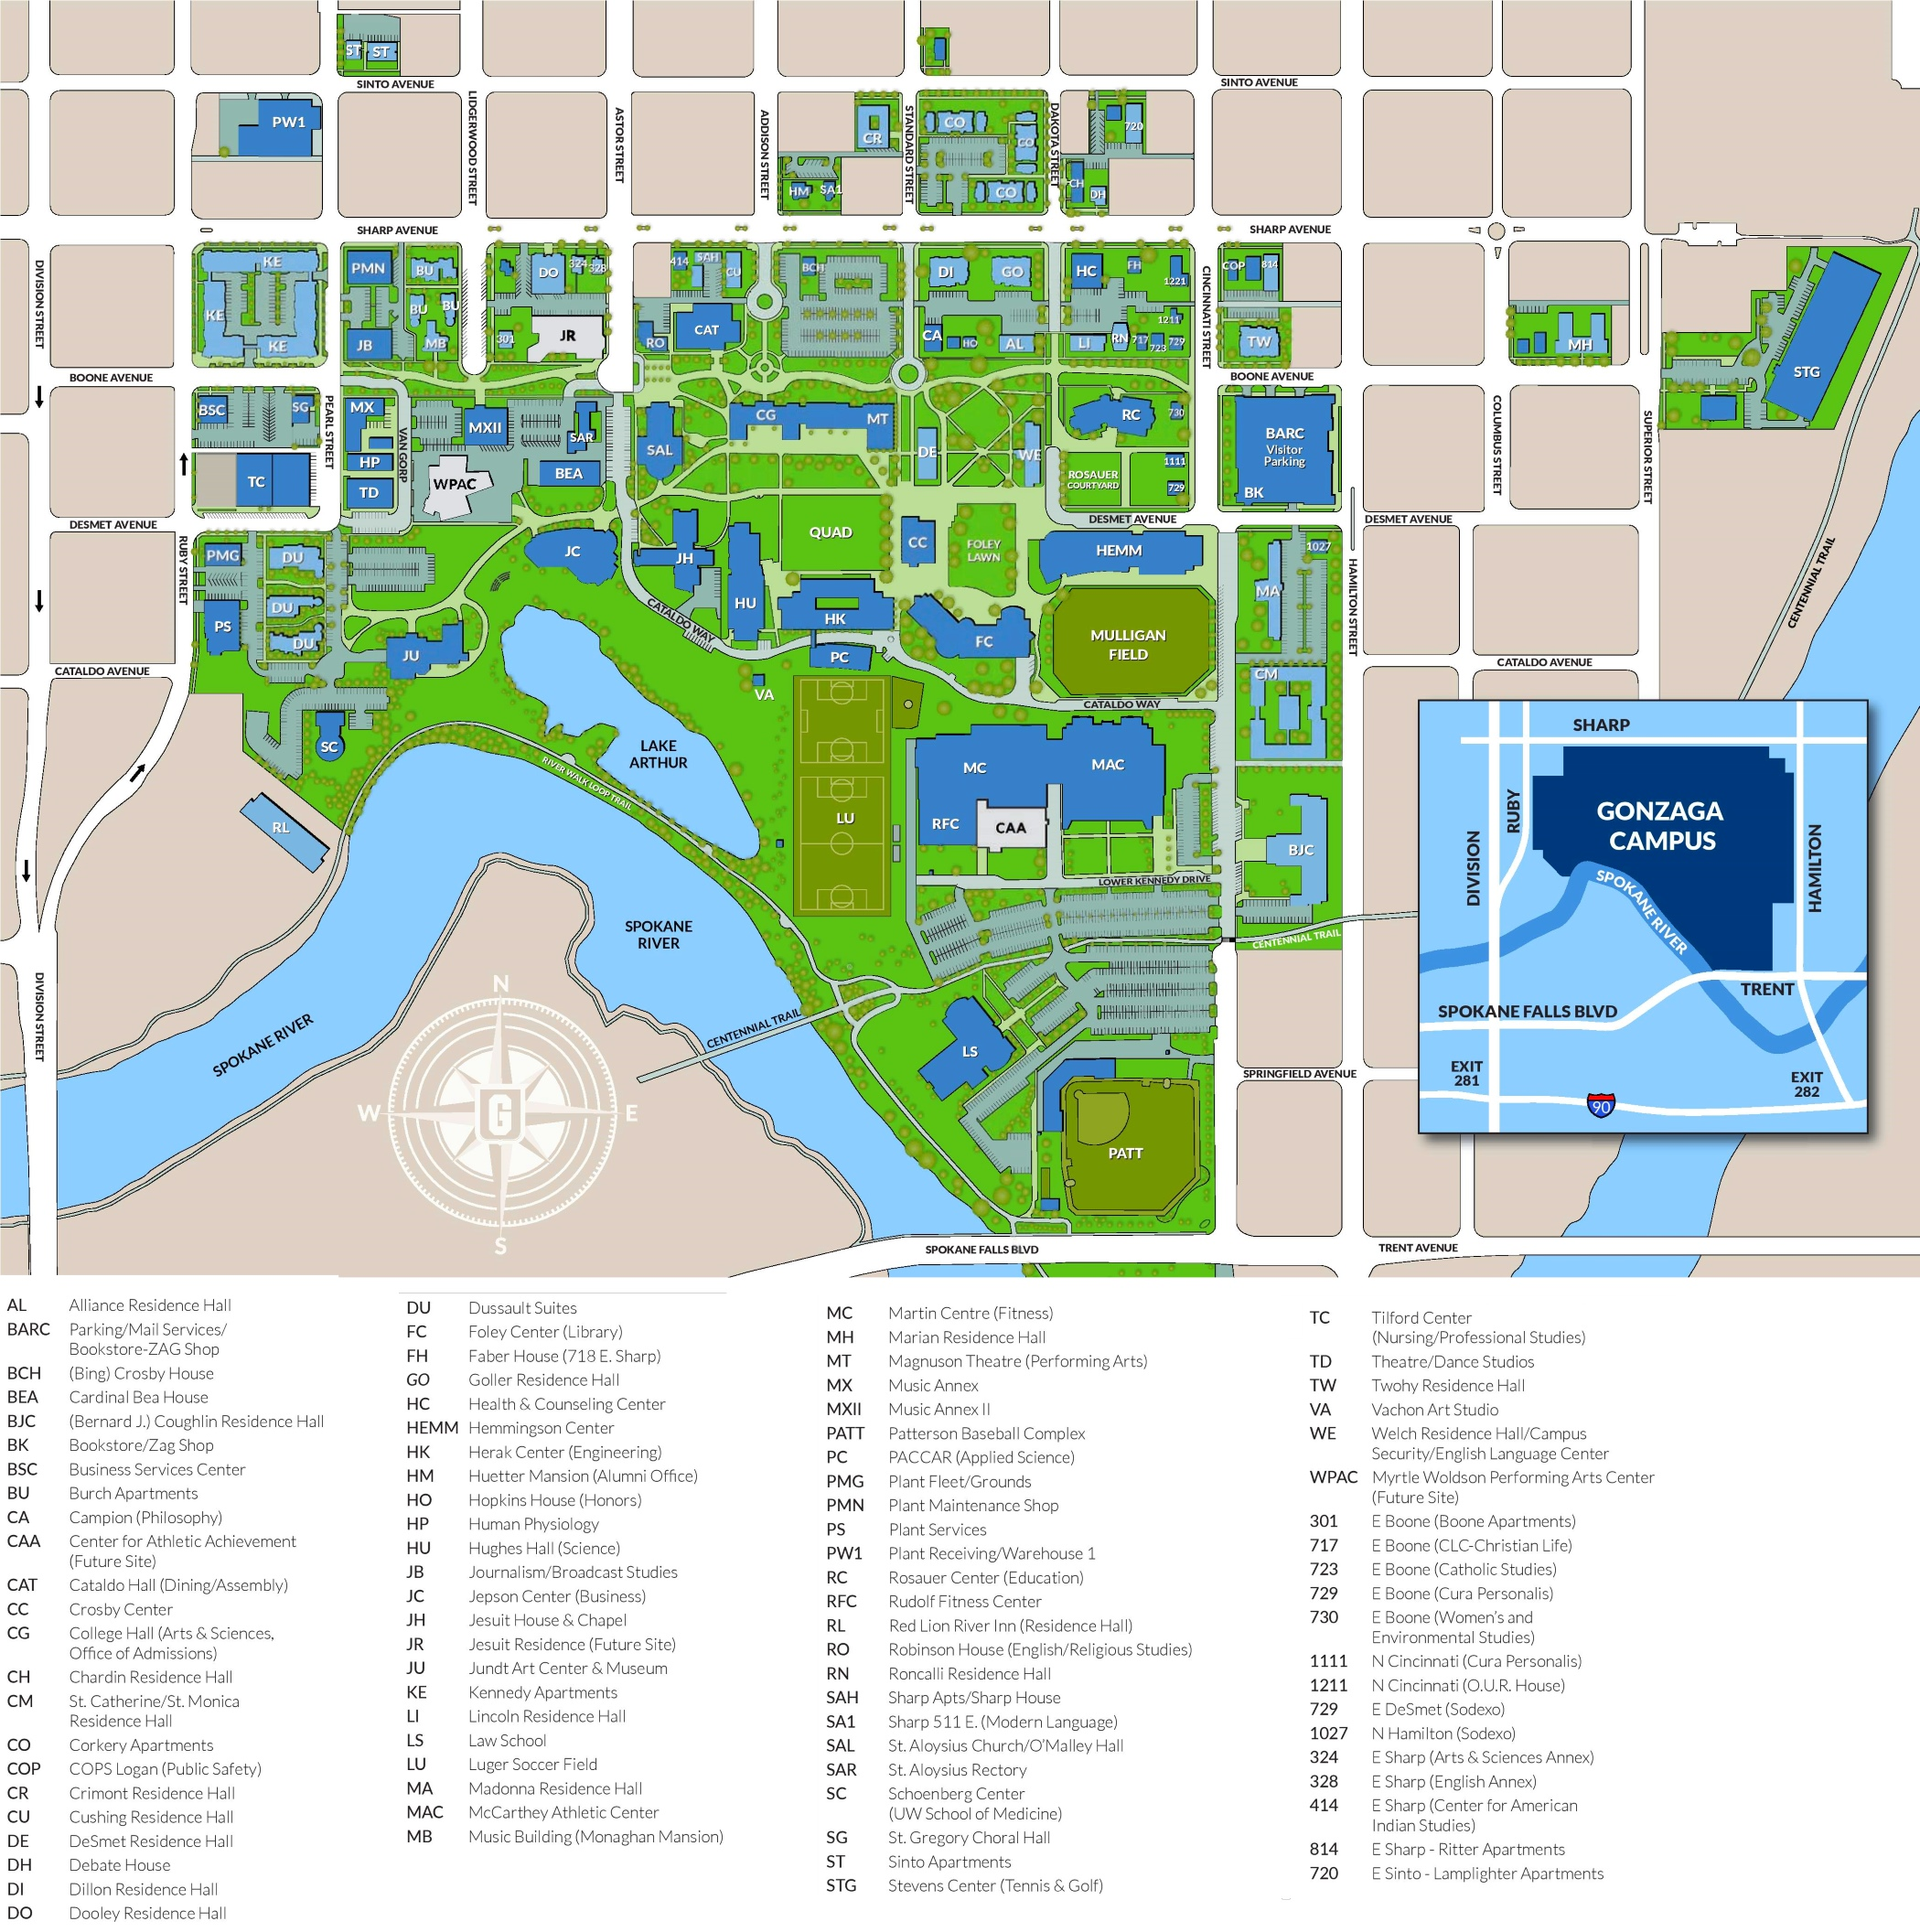 Gonzaga University Campus map